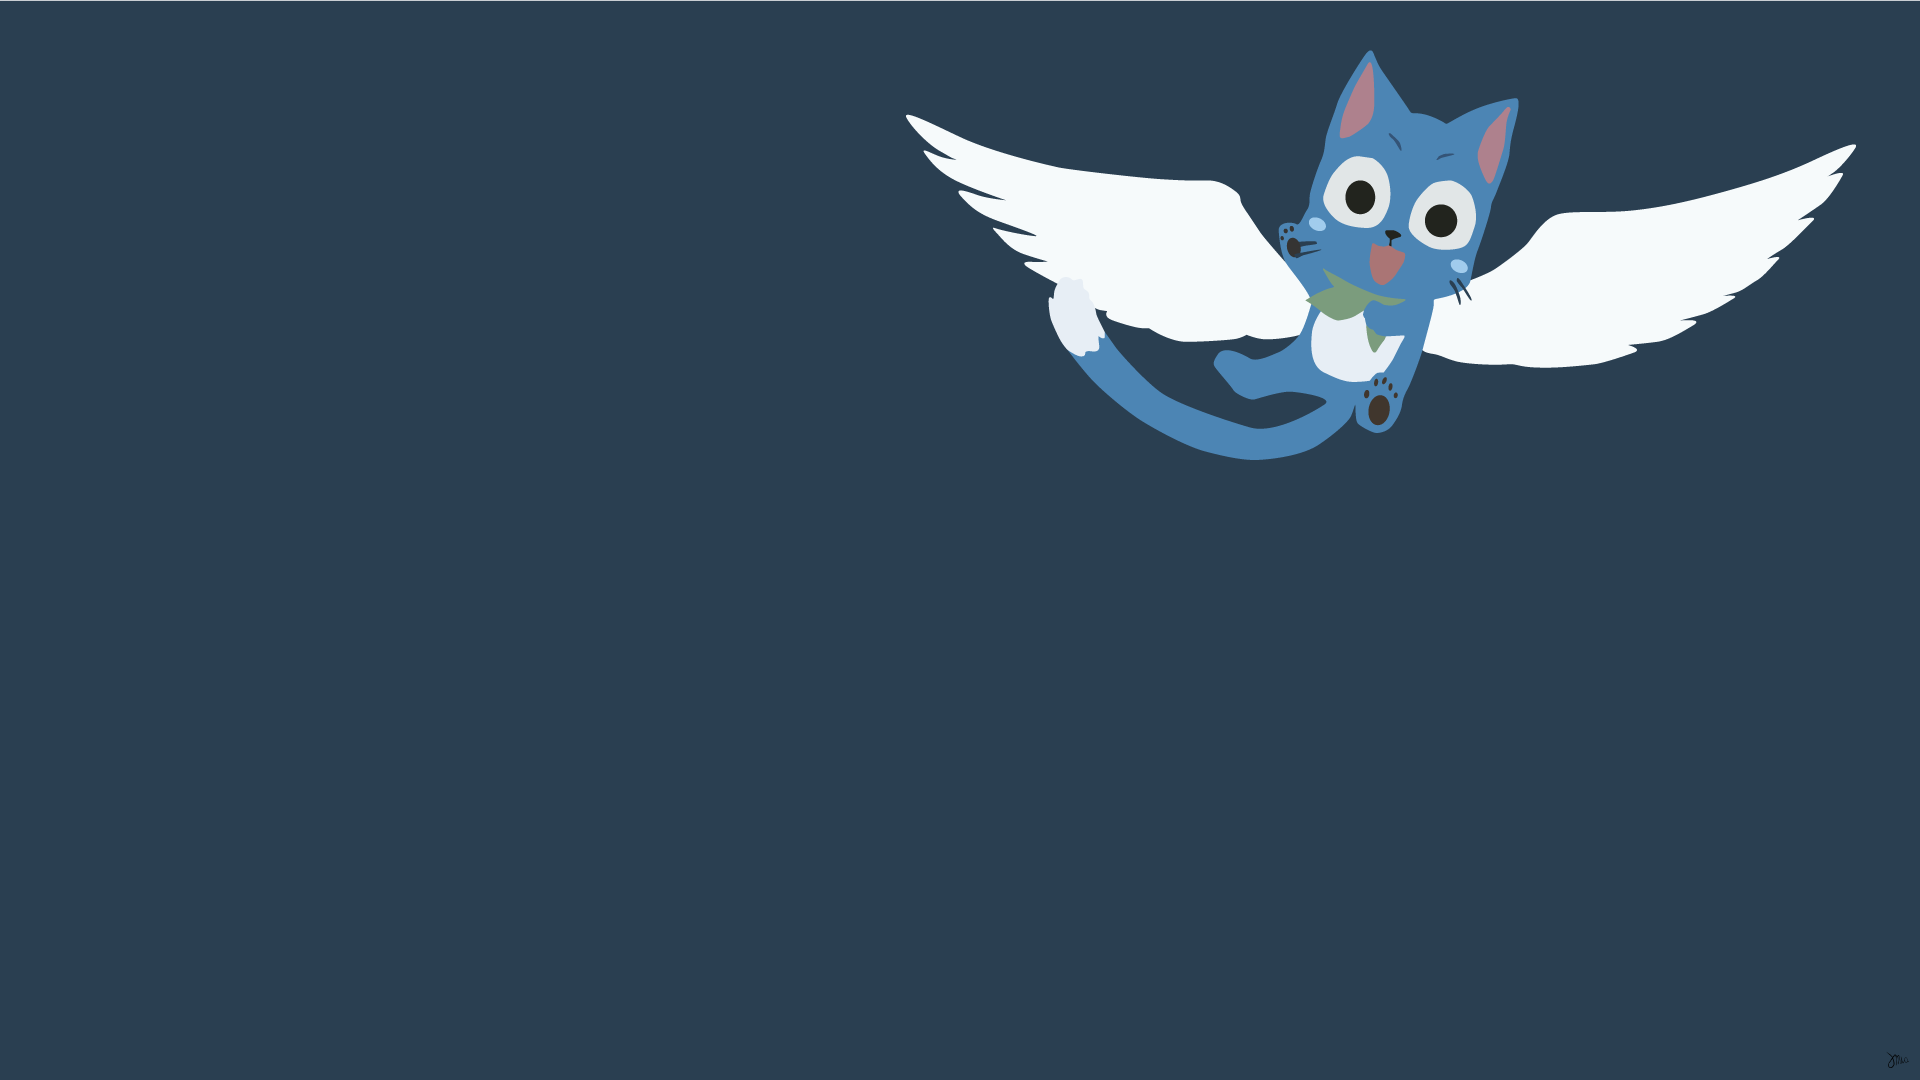 fairy tail minimalist wallpaper - photo #5